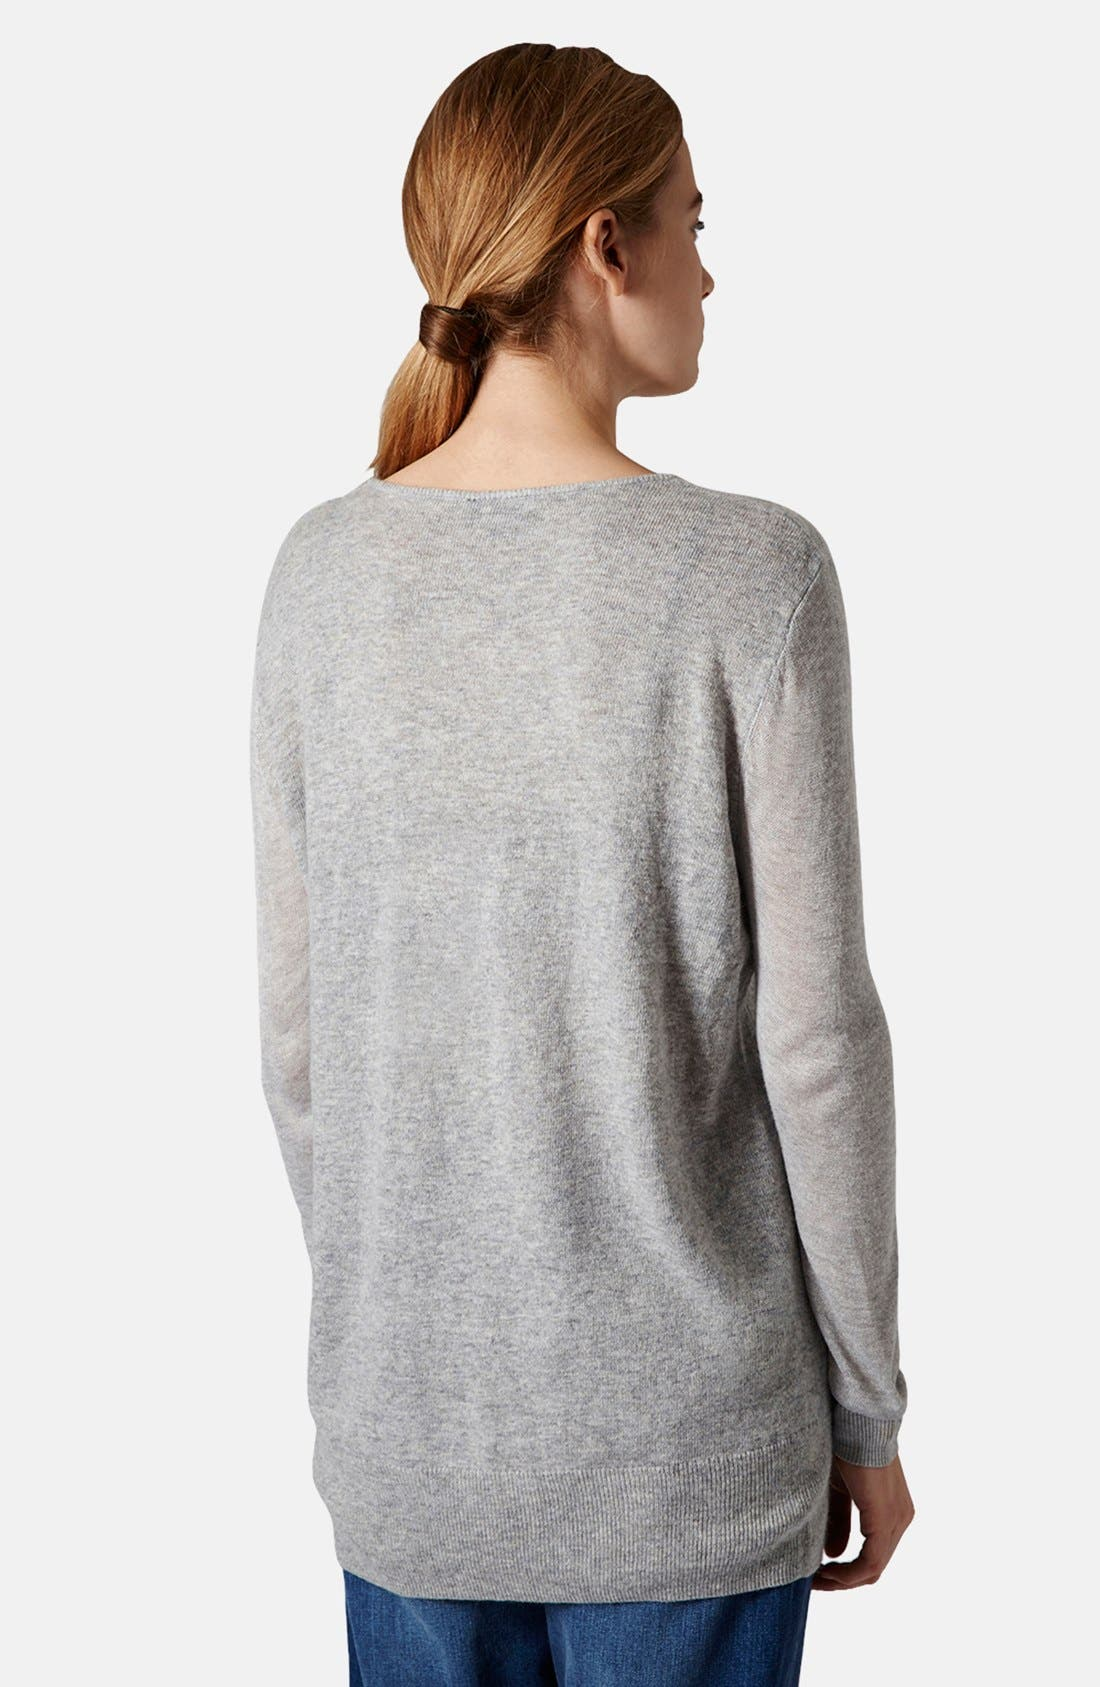 TOPSHOP, Sheer Sleeve Tunic Sweater, Alternate thumbnail 3, color, 050